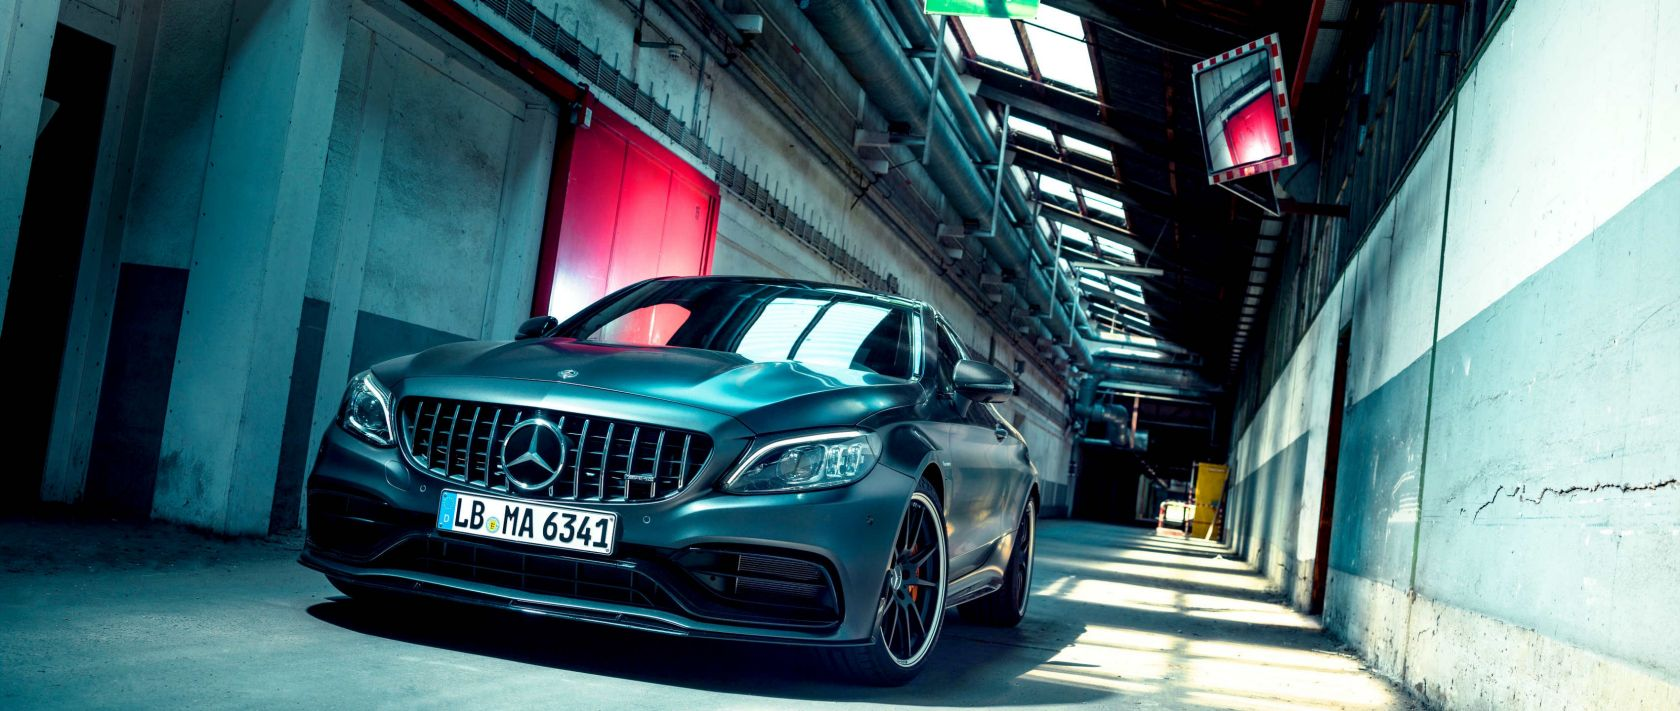 Mercedes-Benz: The front view of the Mercedes-AMG C 63 S Coupé (C 205).